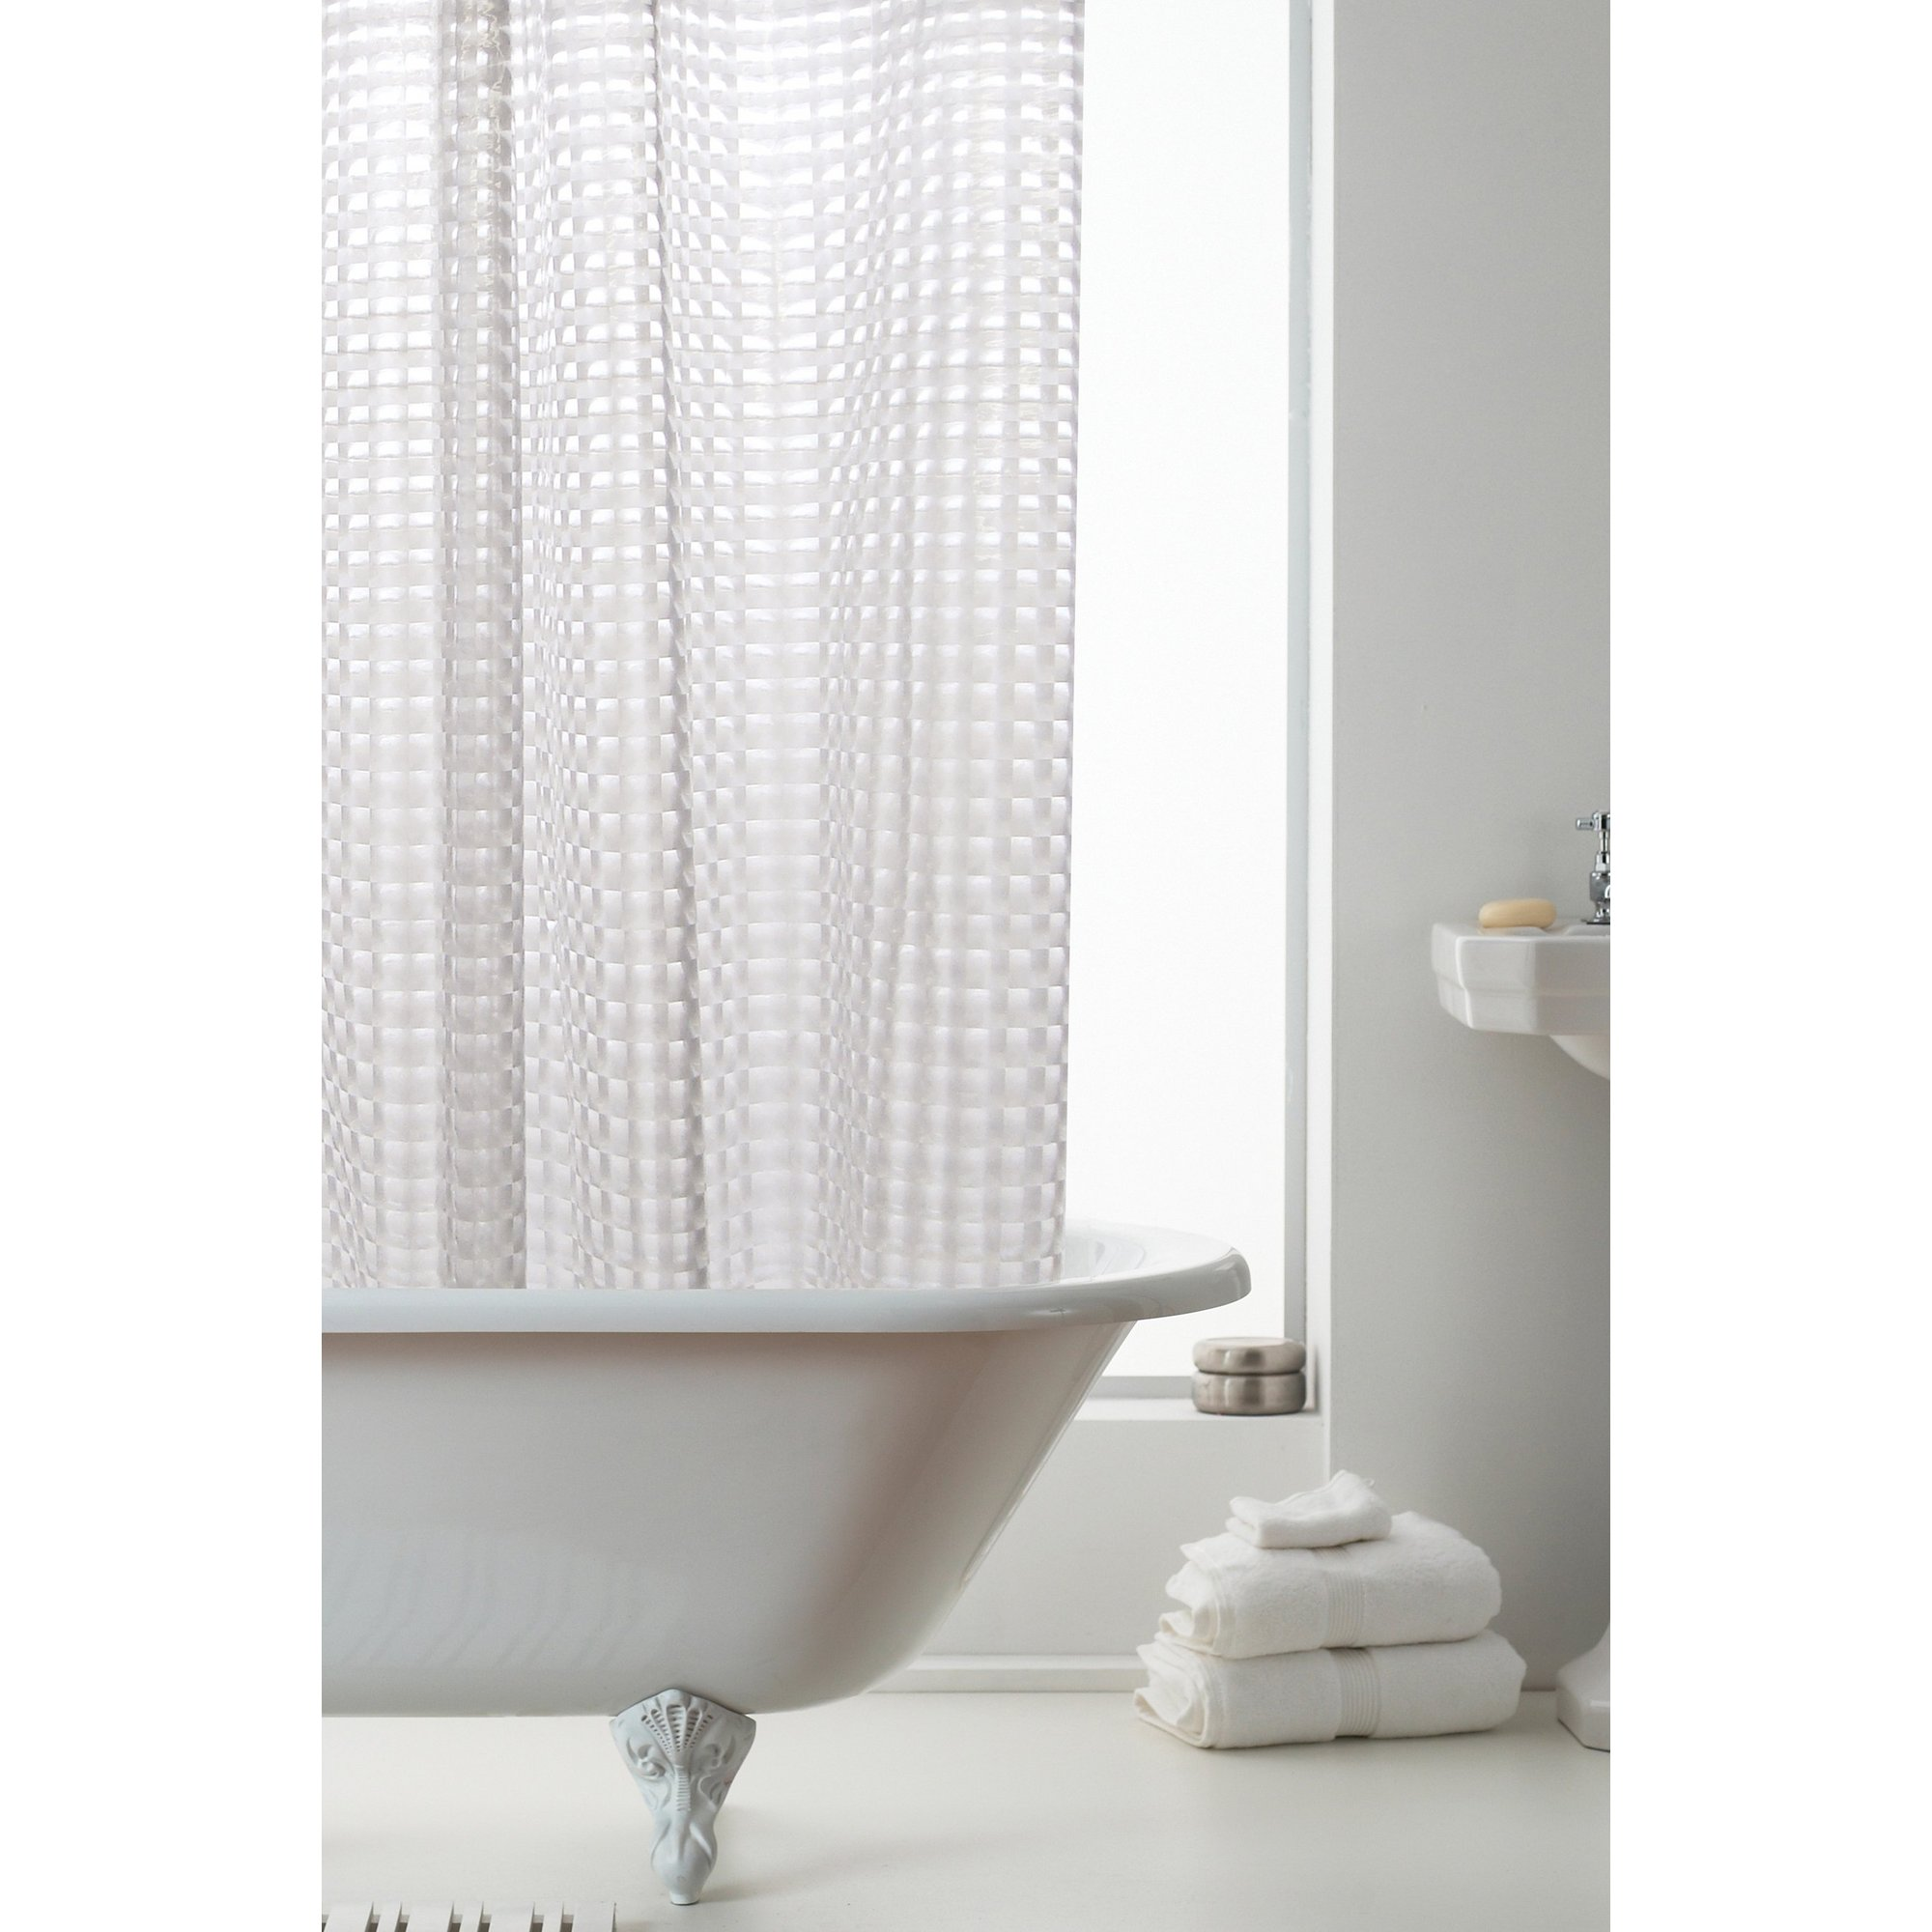 Image of 3D Shower Curtain